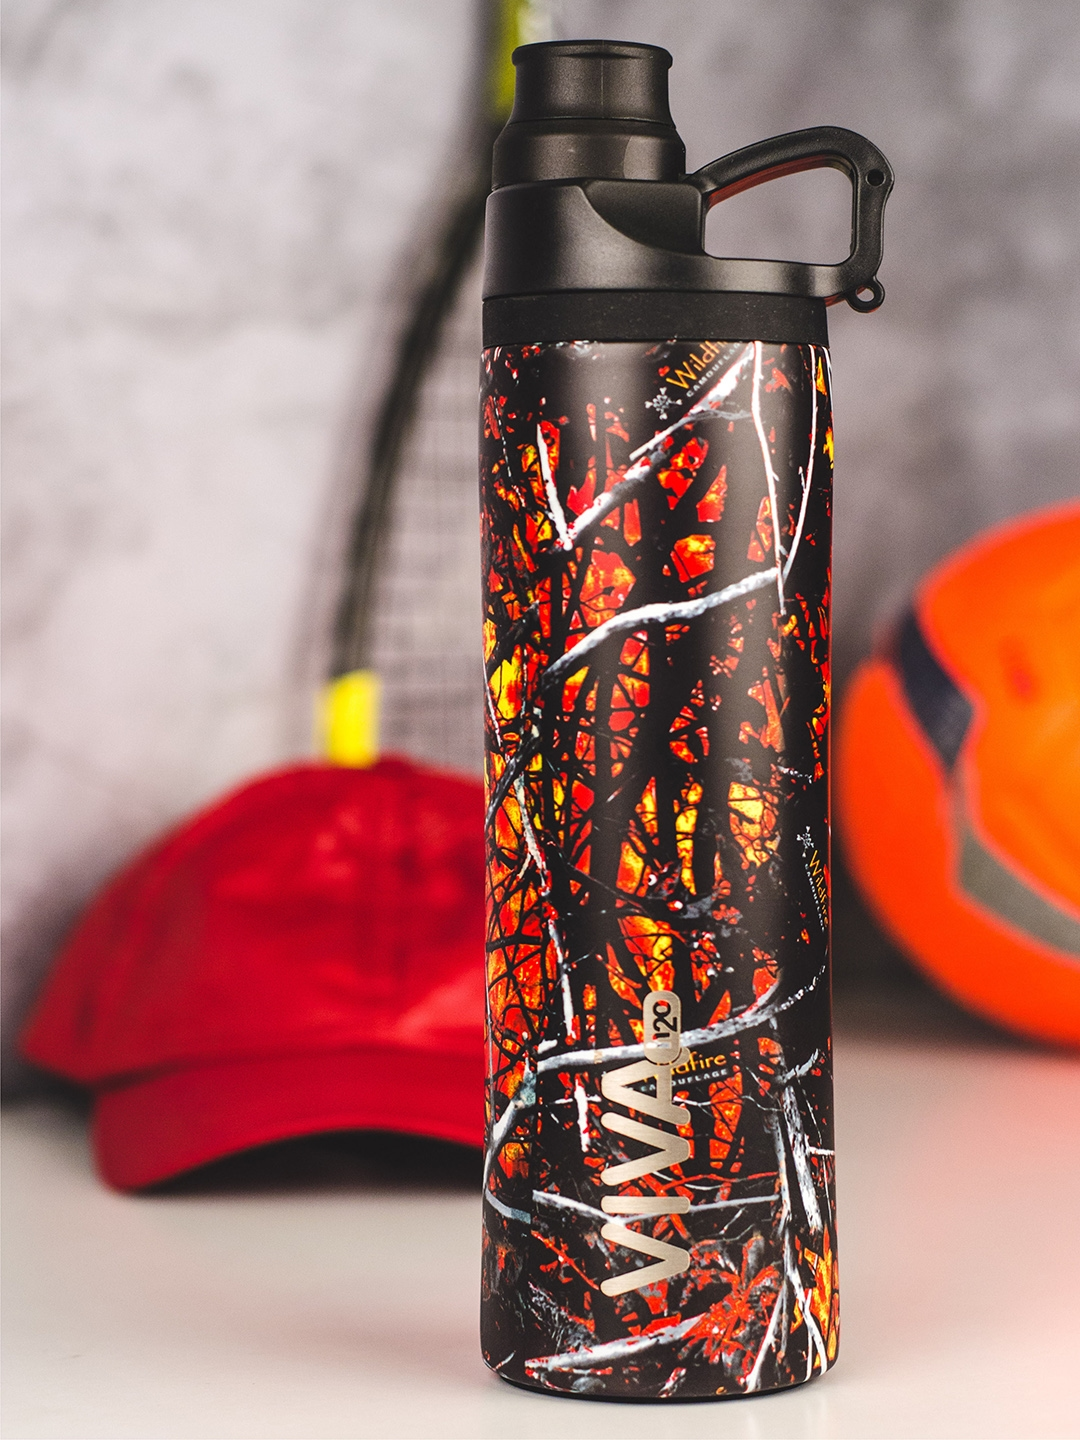 VIVA h2o Red   Black Printed Stainless Steel Vaccum Insulated Water Bottle 650 ml